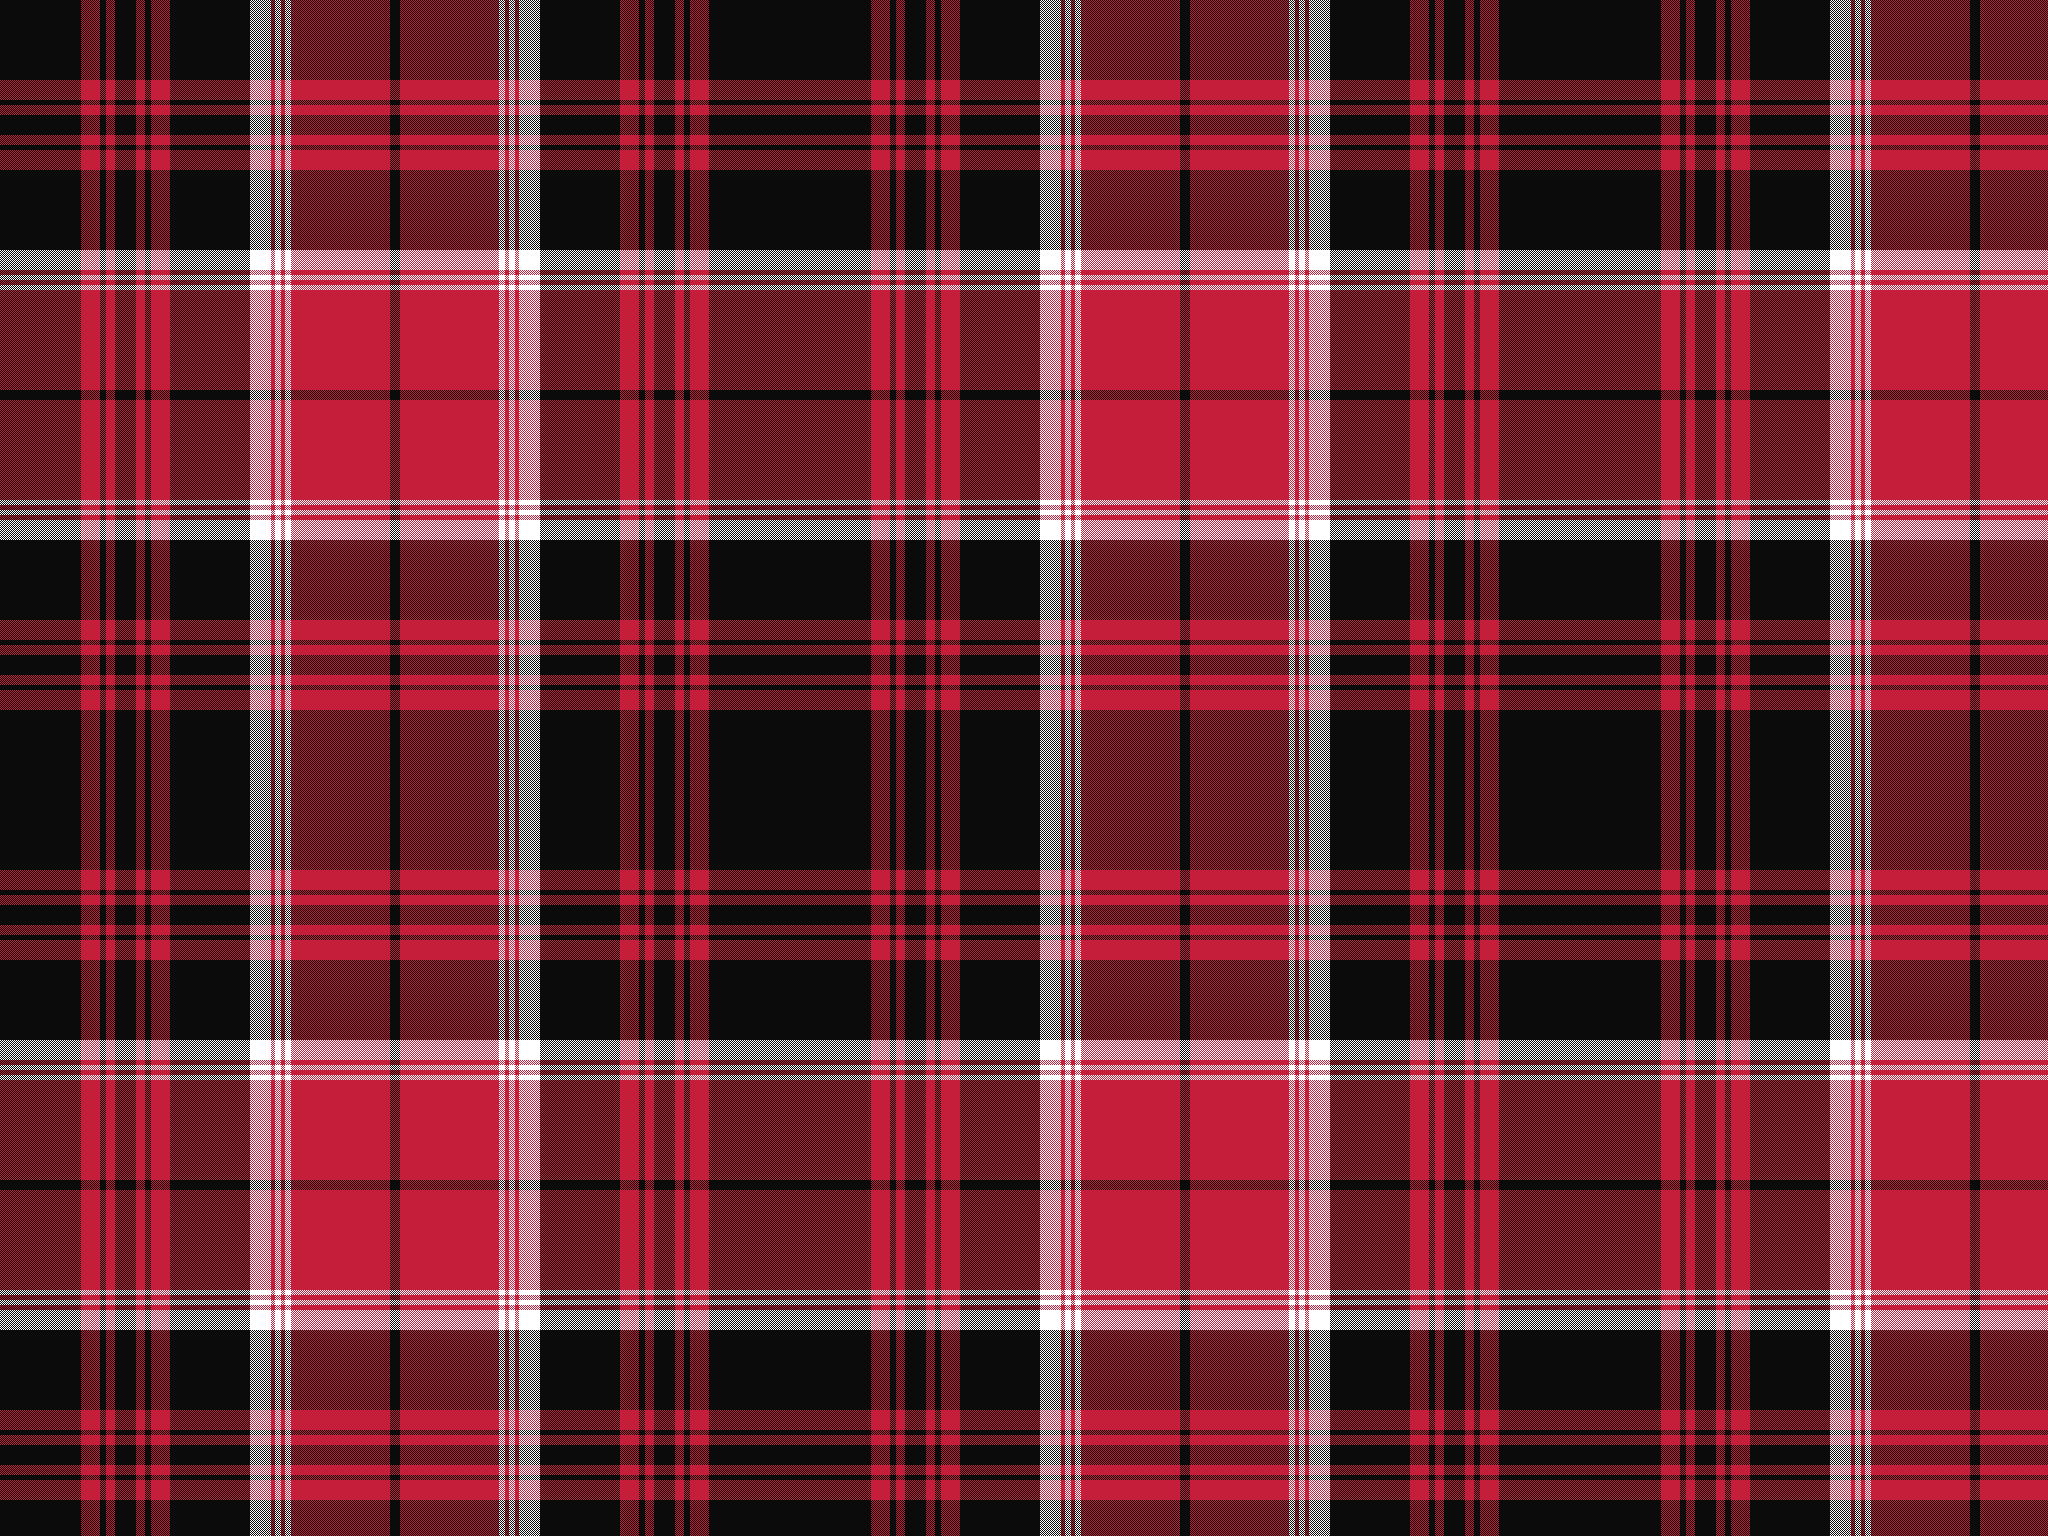 Download Red Plaid Wallpaper Gallery